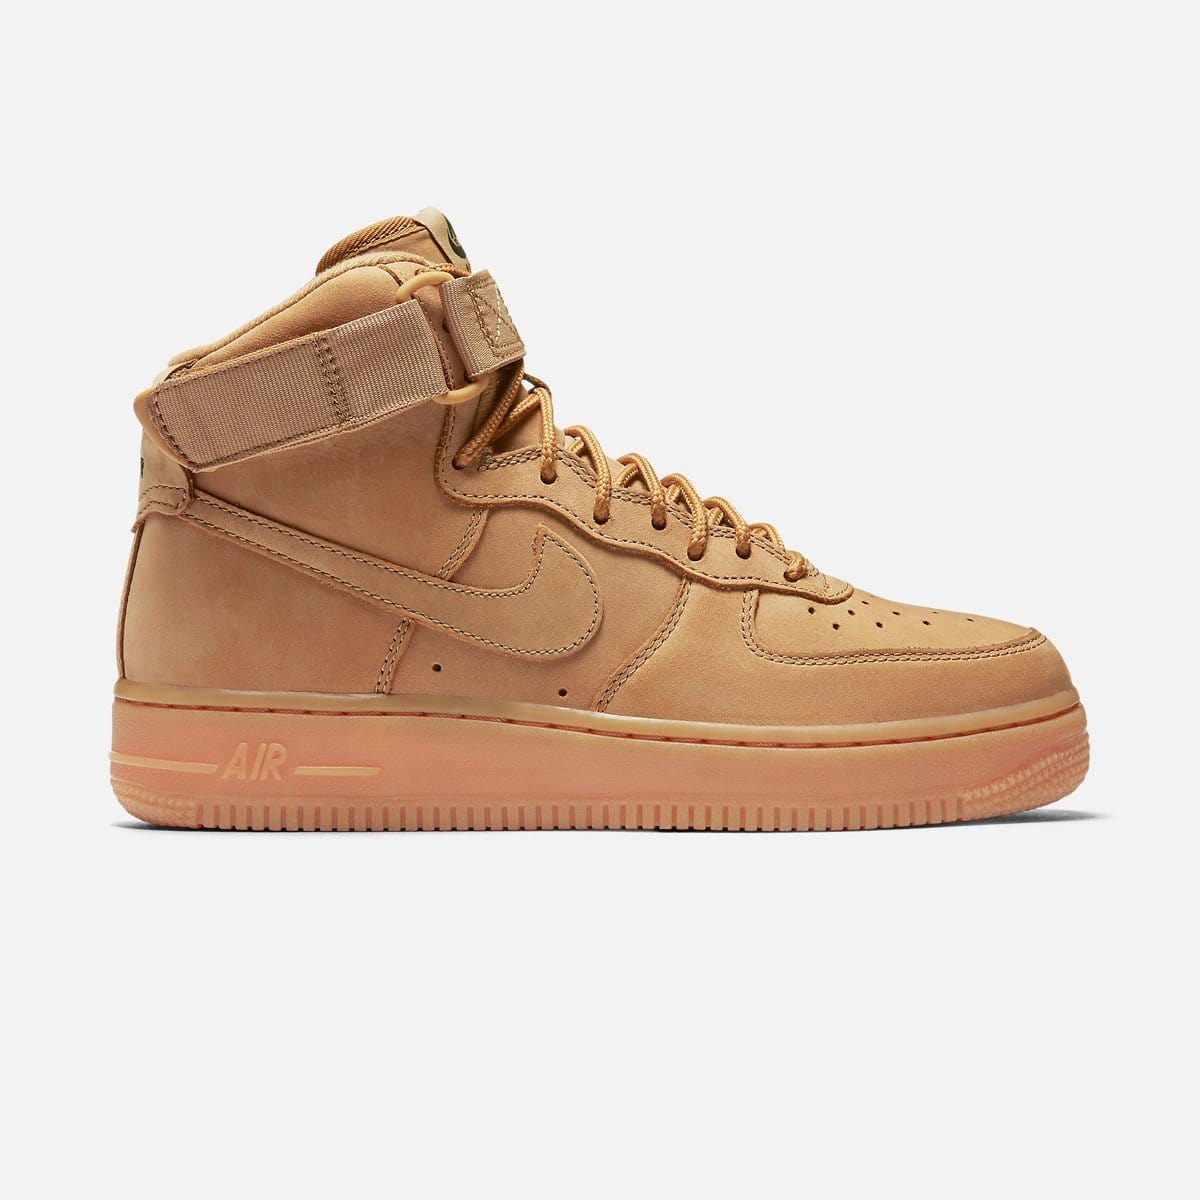 Nike Air Force 1 HI Premium (Flax/Flax-Outdoor Green)